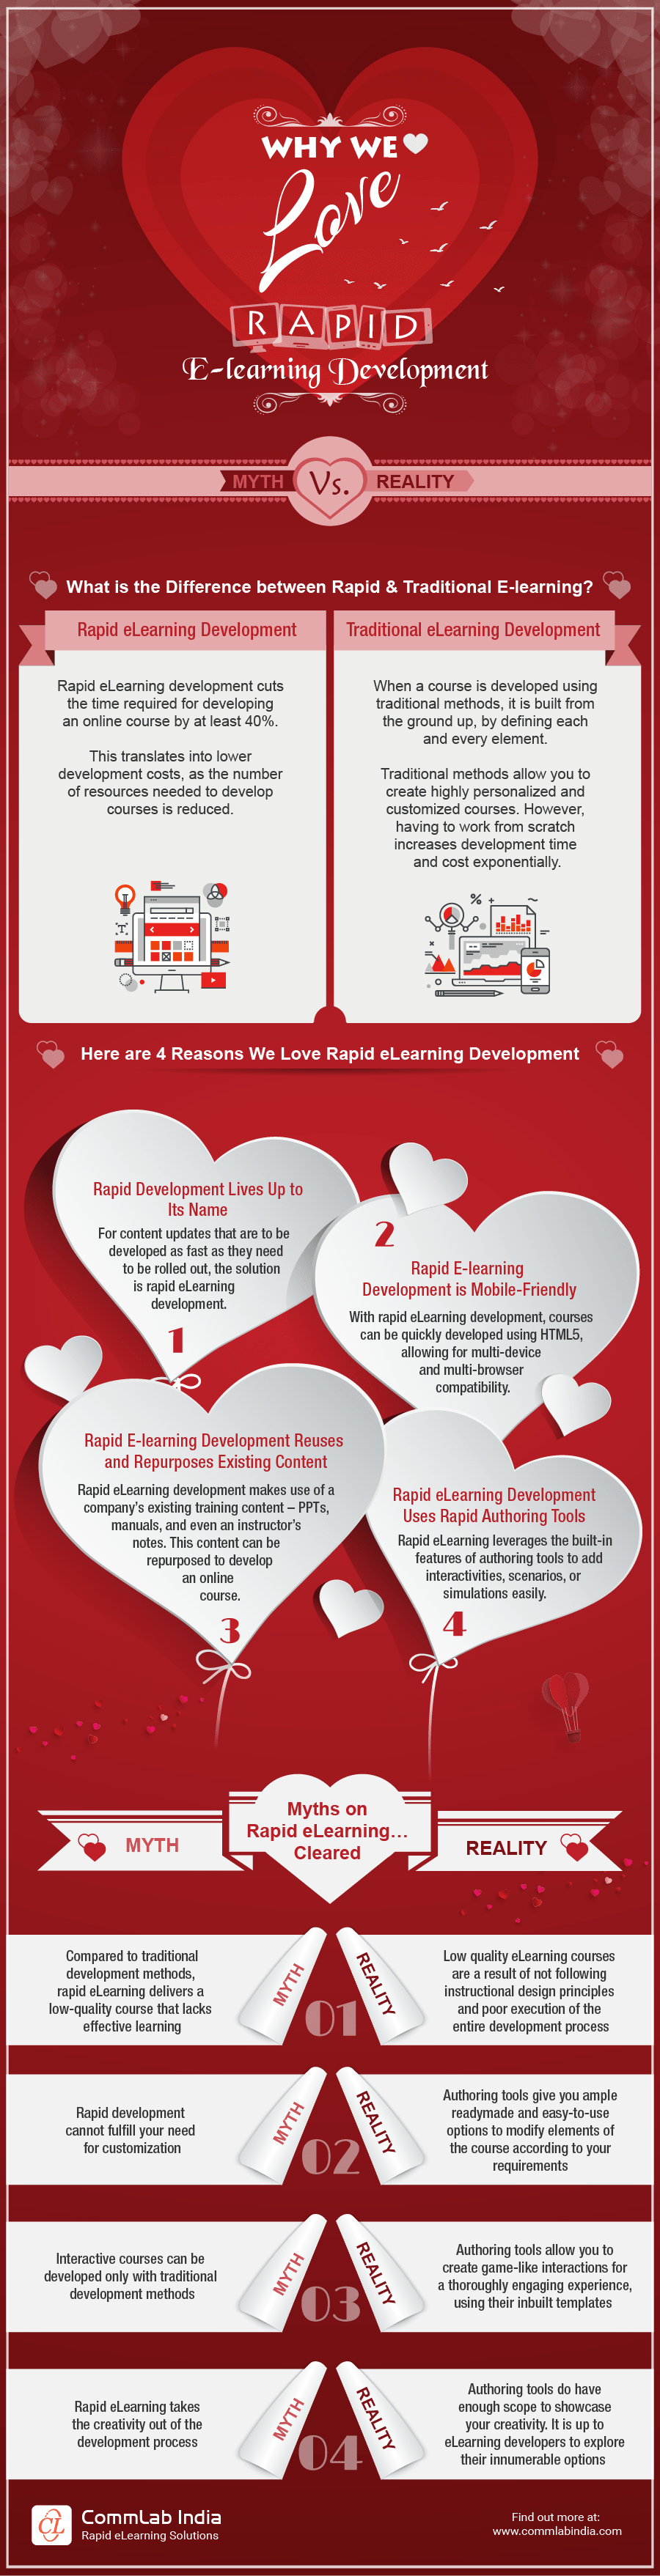 Why We Love Rapid E-learning Development: Myth Vs. Reality [Infographic]